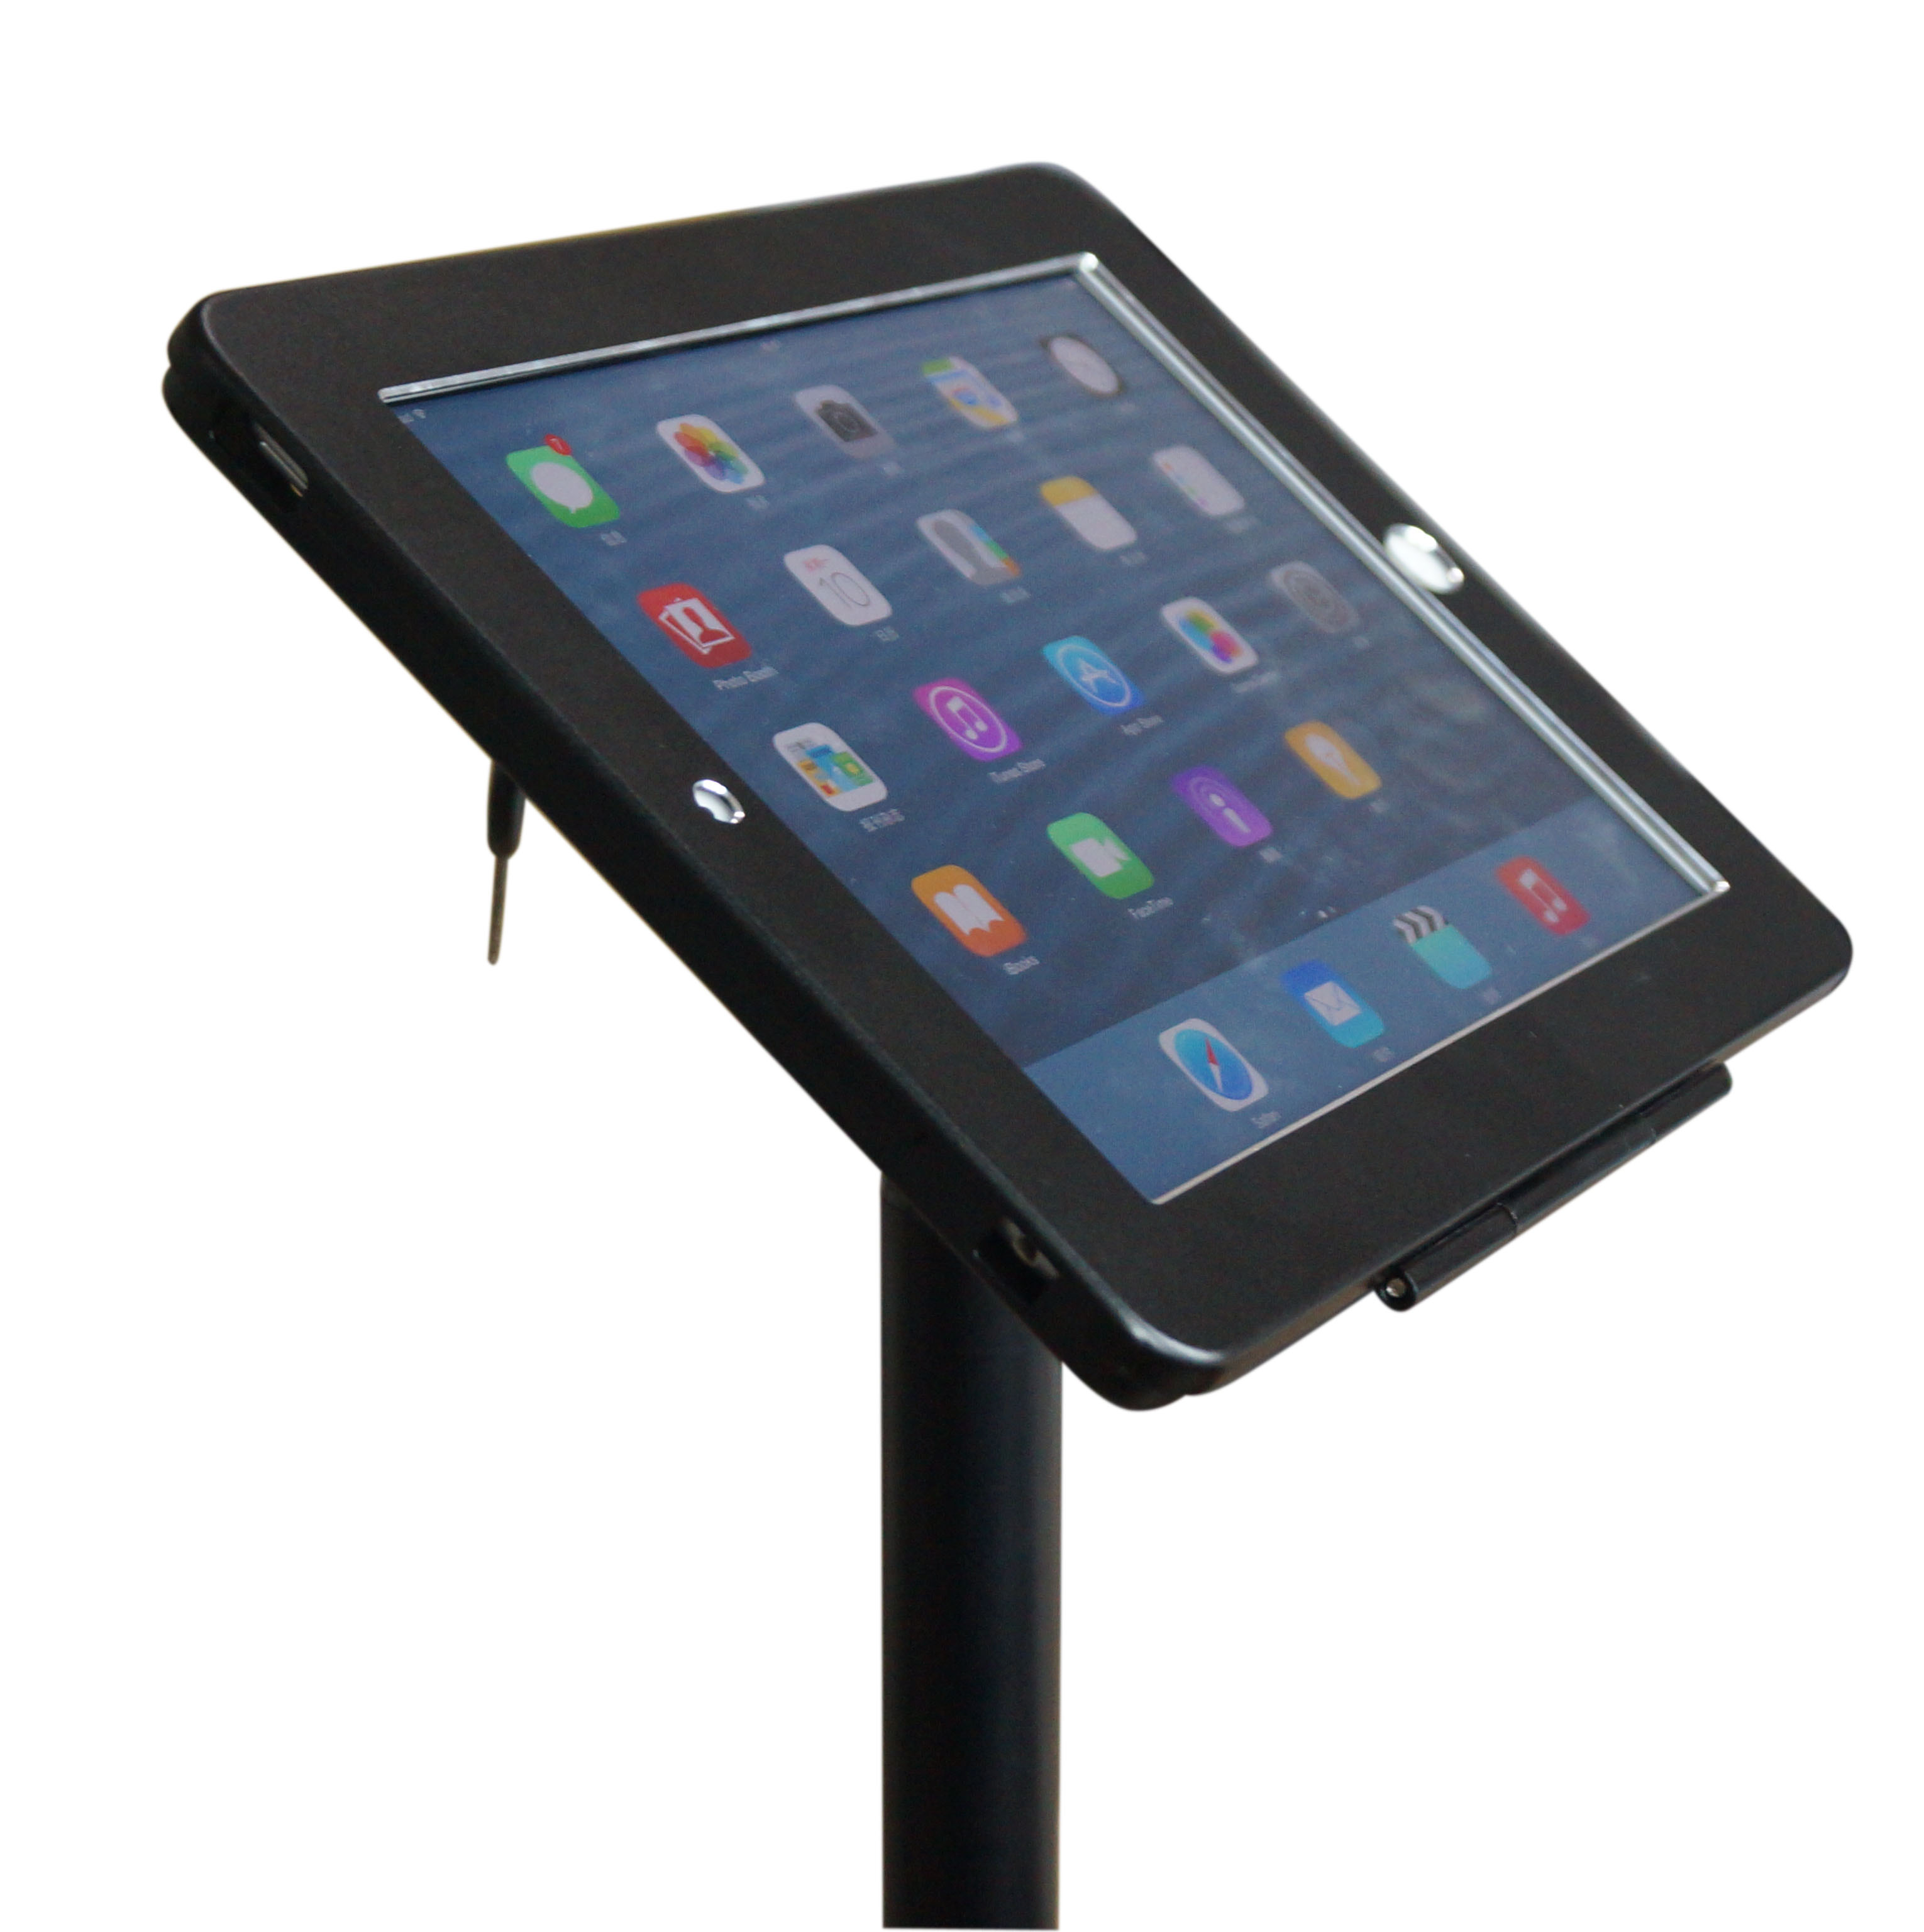 P2507 P2507ap Ipad Stand Height Adjustable Tv Wall